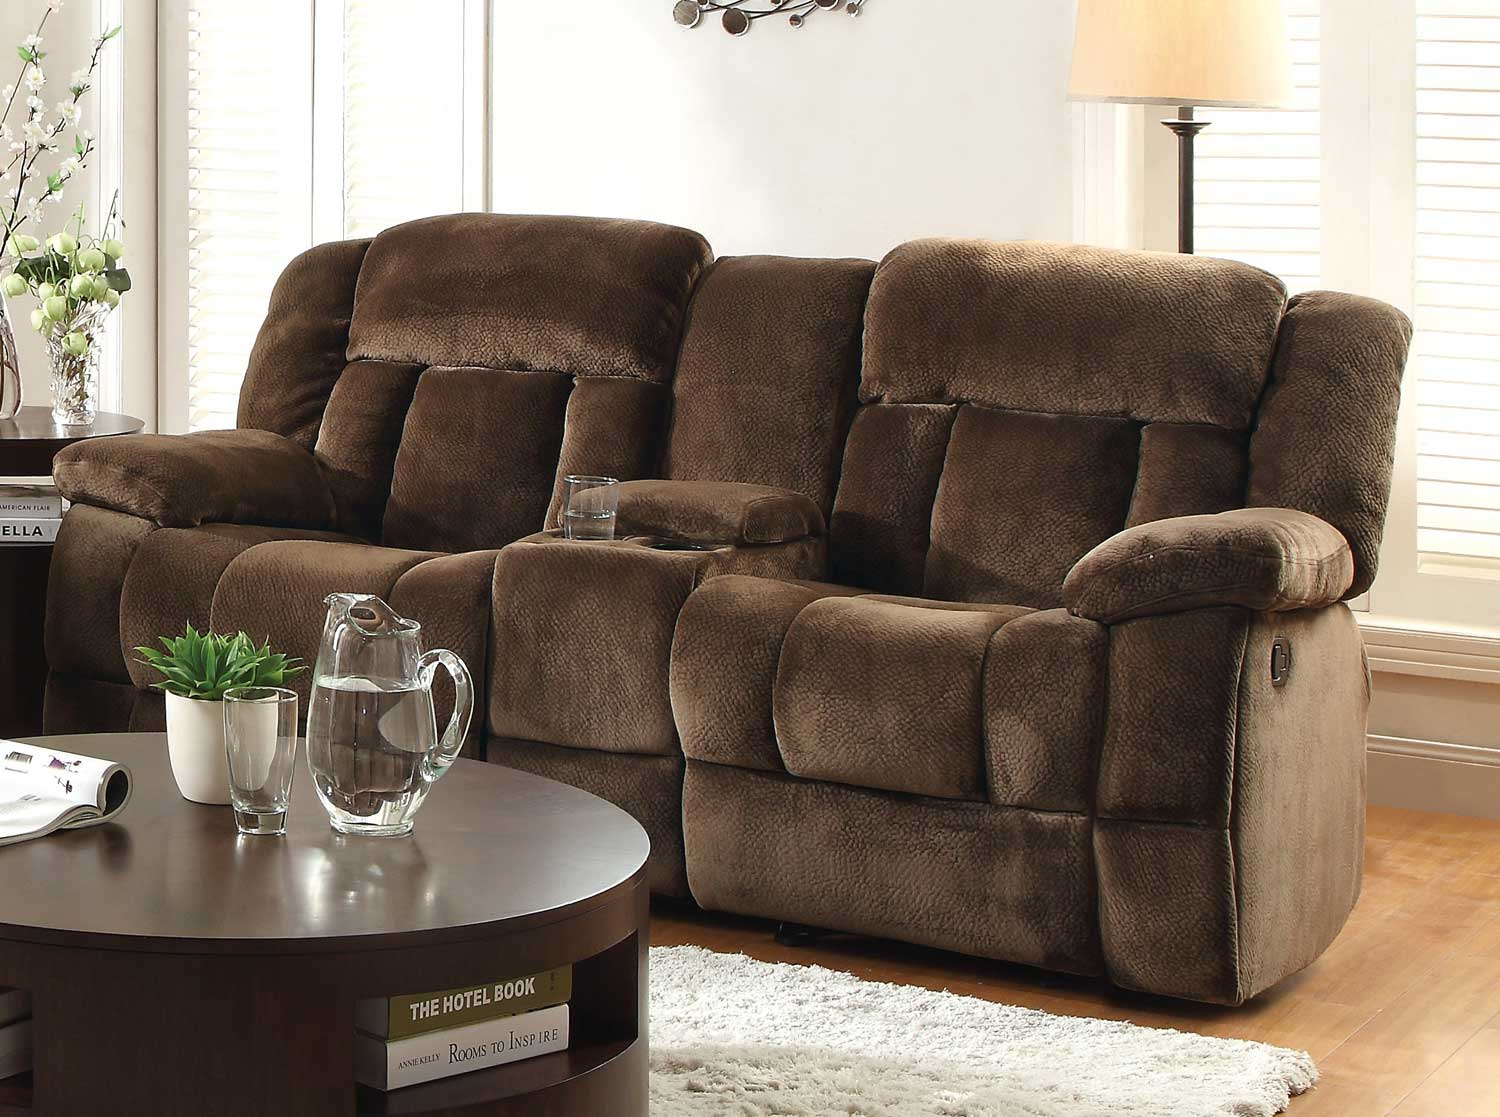 Homelegance Laurelton Reclining Sofa Set Chocolate Textured Plush Microfiber U9636 3